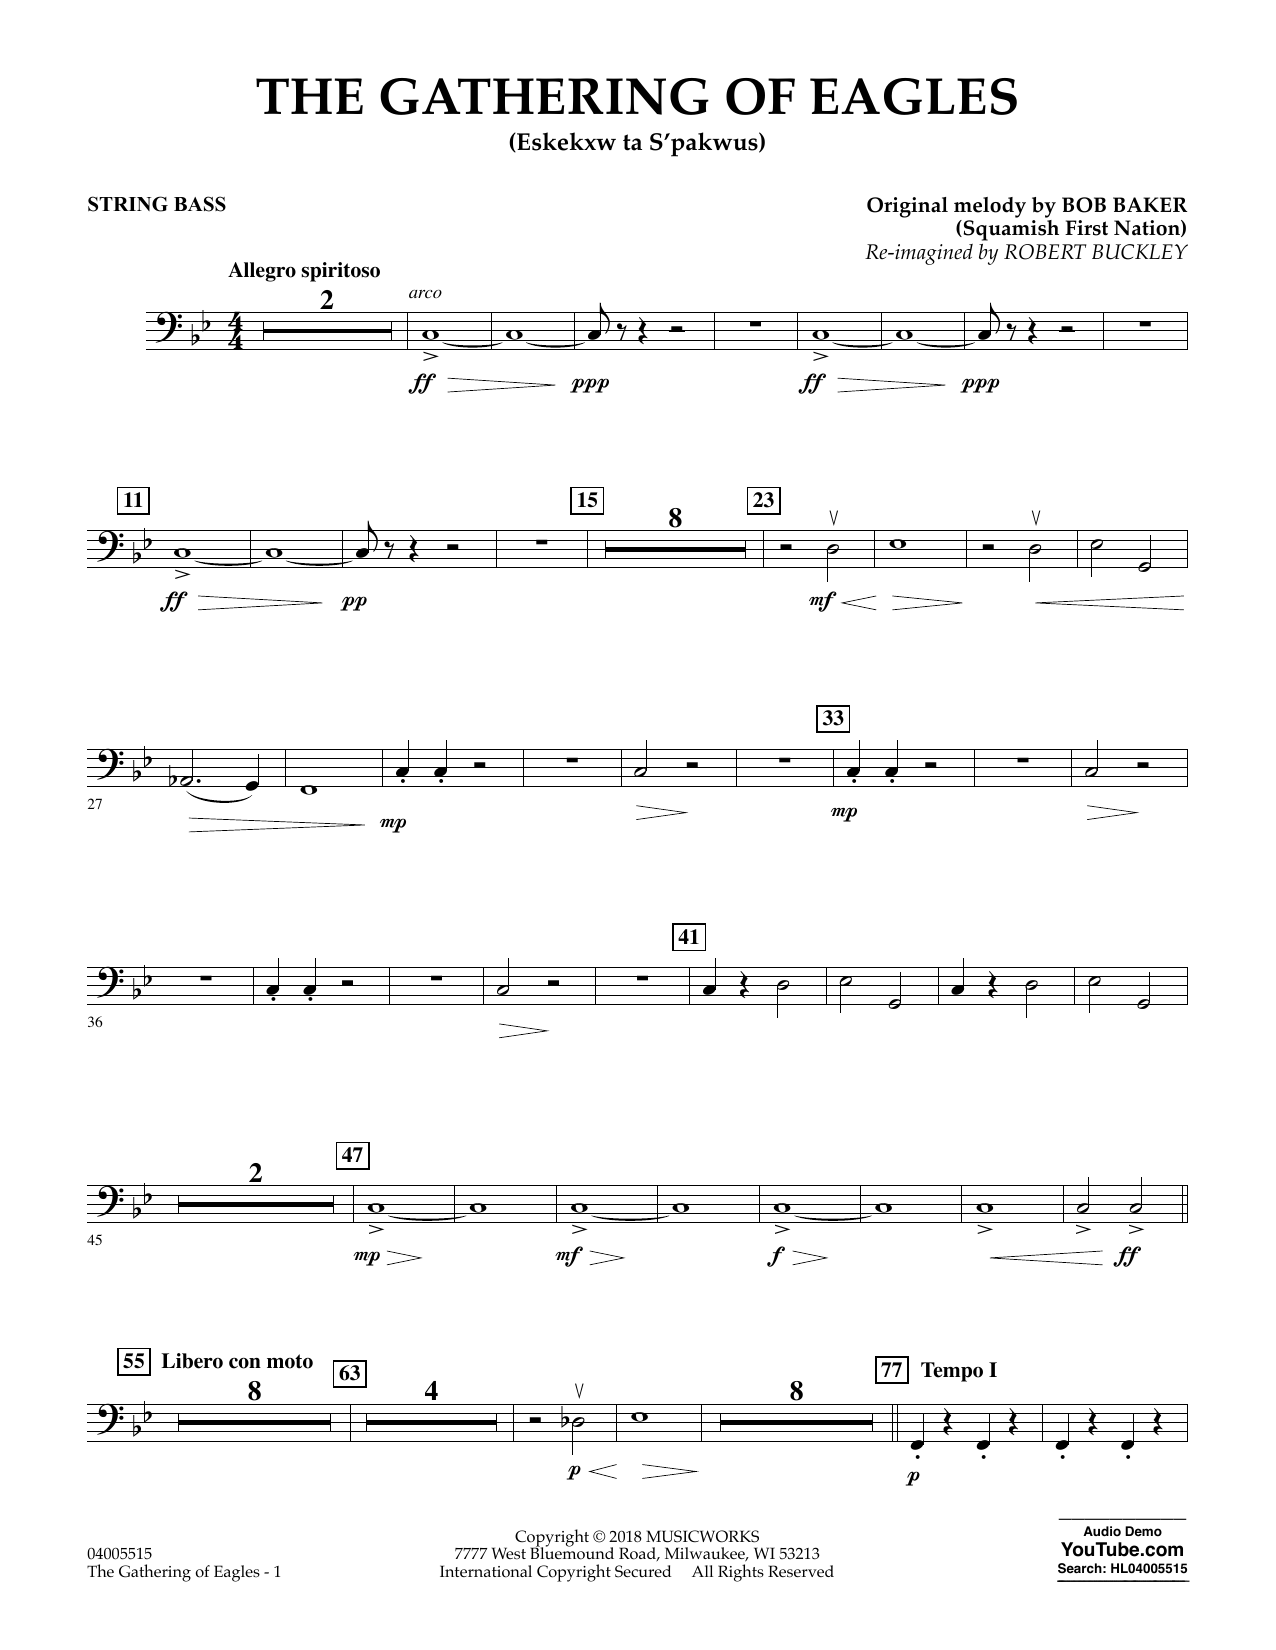 Robert Buckley The Gathering of Eagles - String Bass sheet music notes and chords. Download Printable PDF.